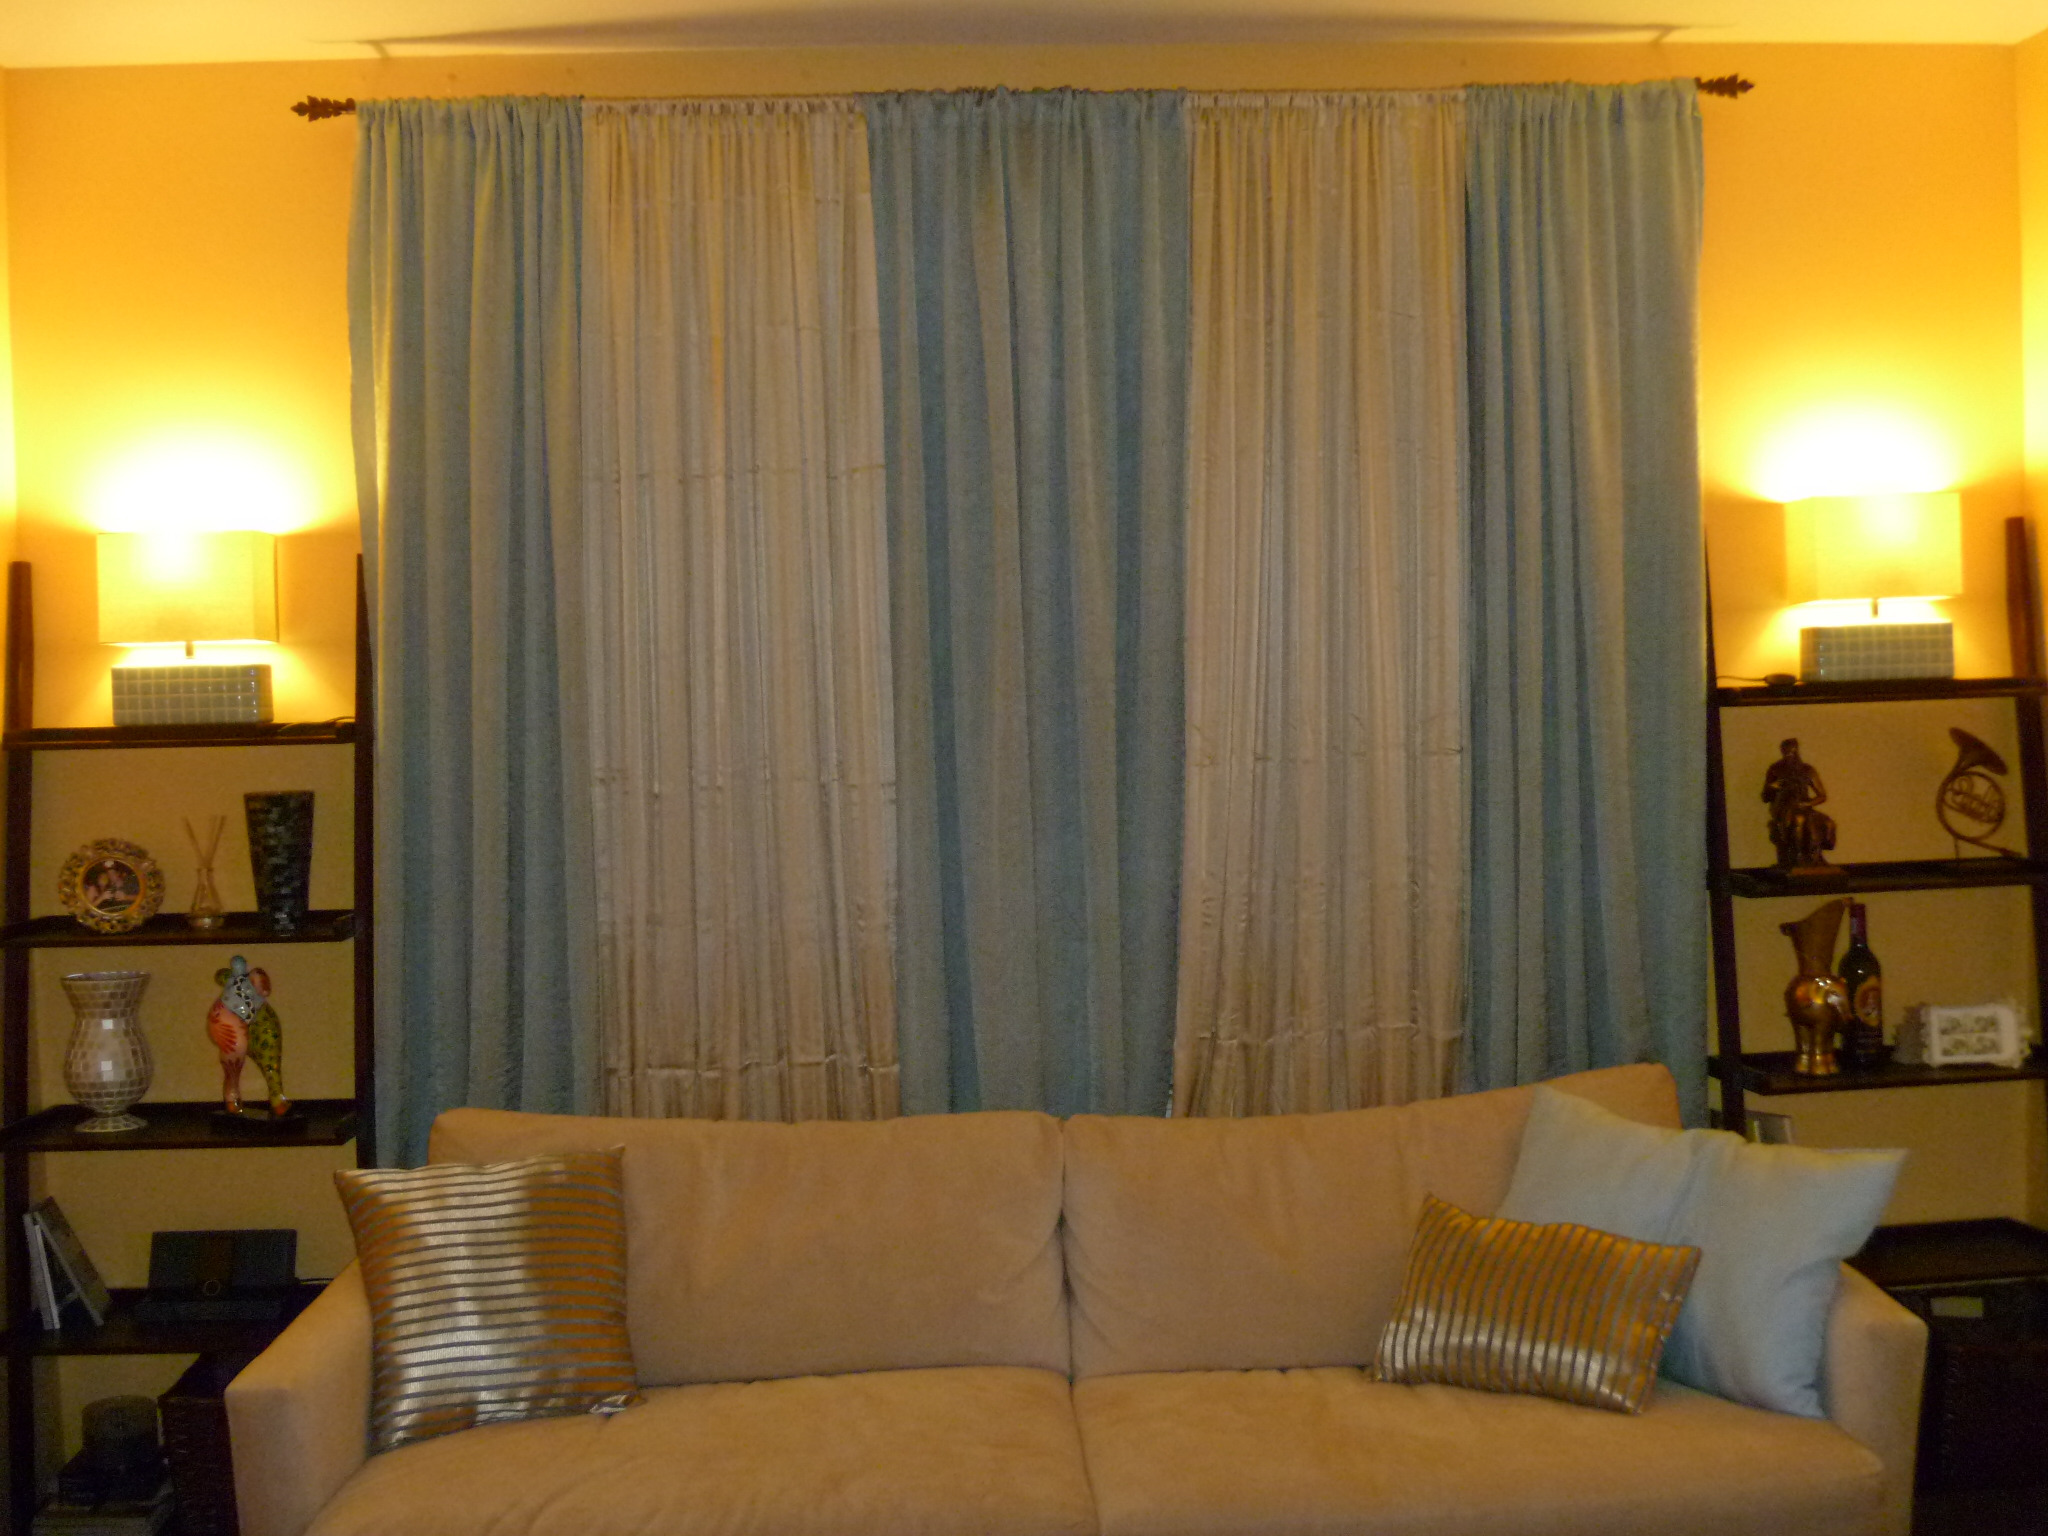 Image result for curtain in room